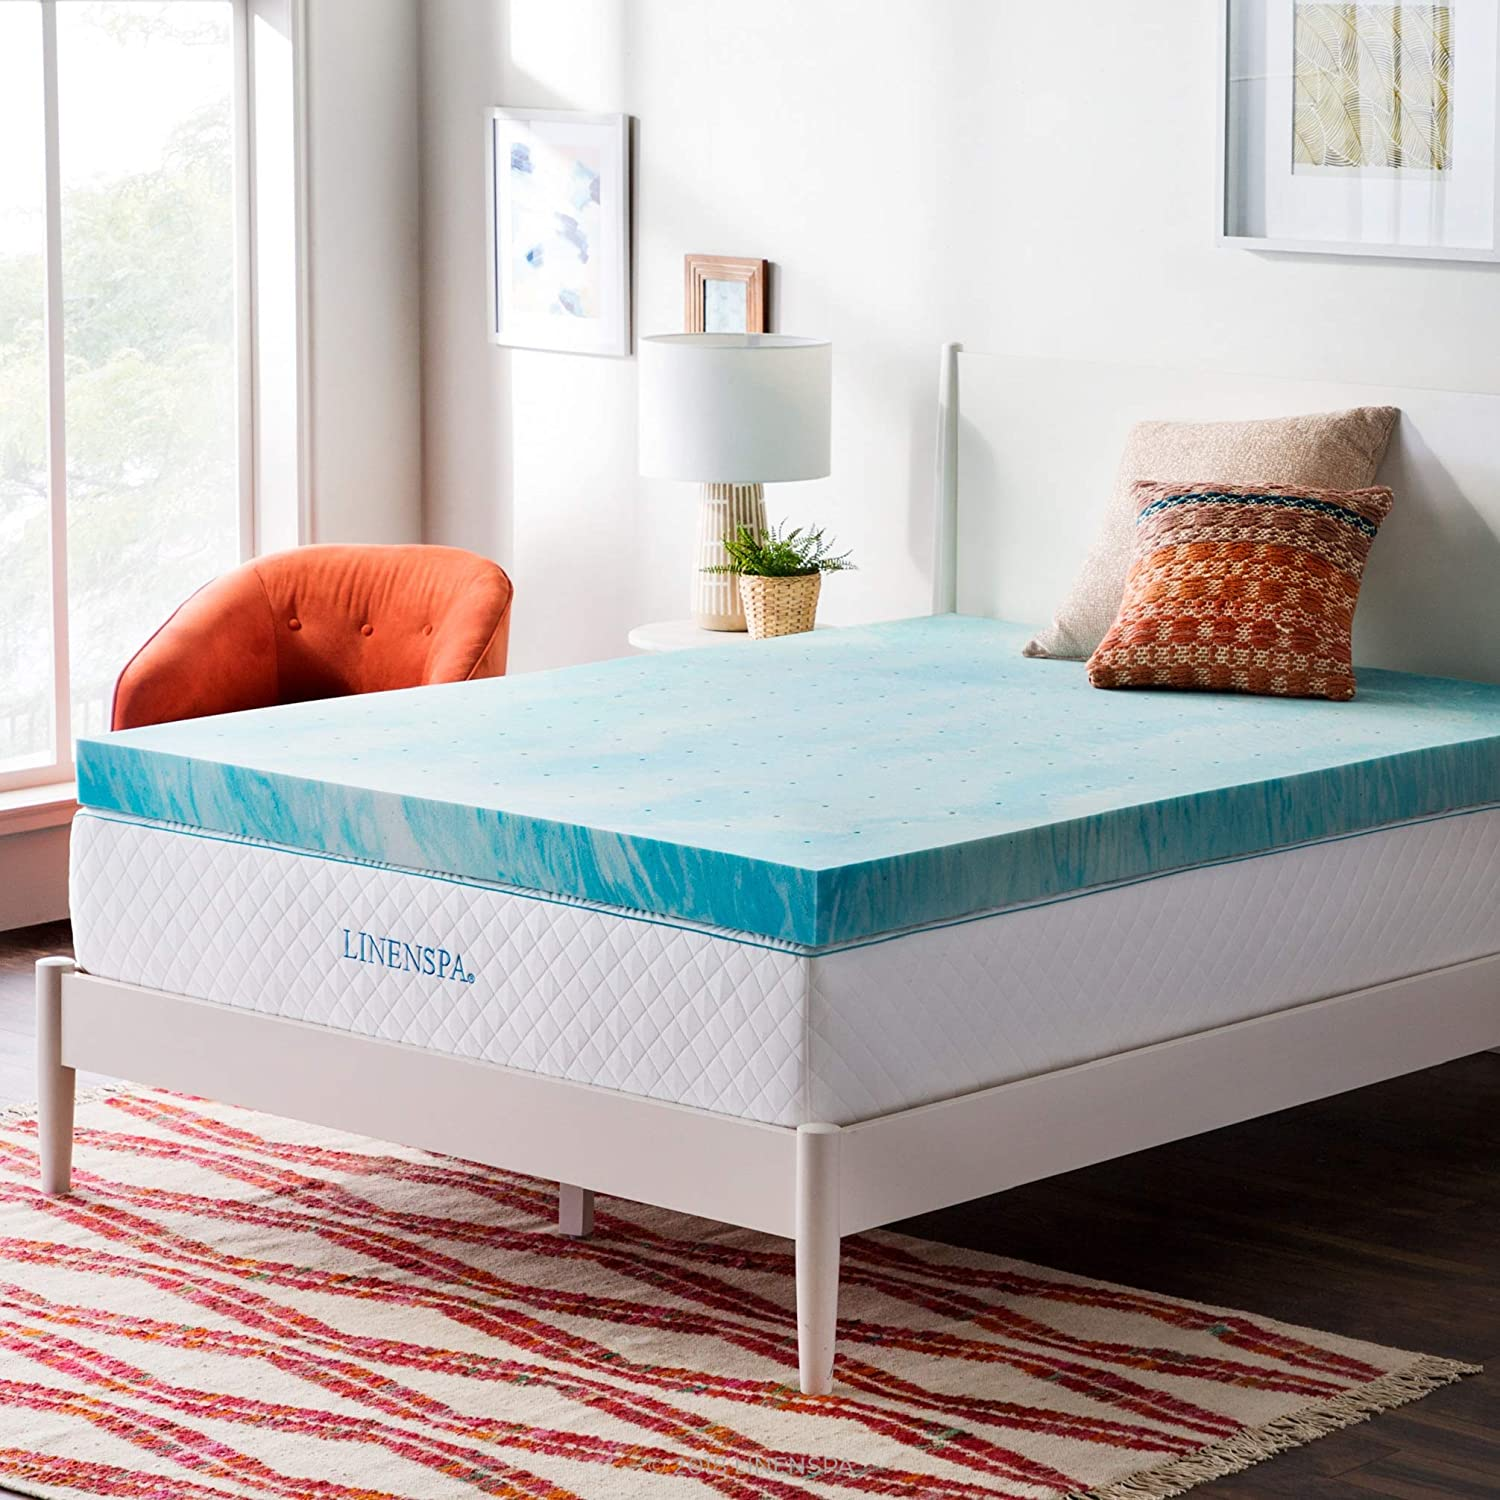 Gel infused mattress toppers contain gel throughout while gel swirl toppers include gel in a swirl pattern